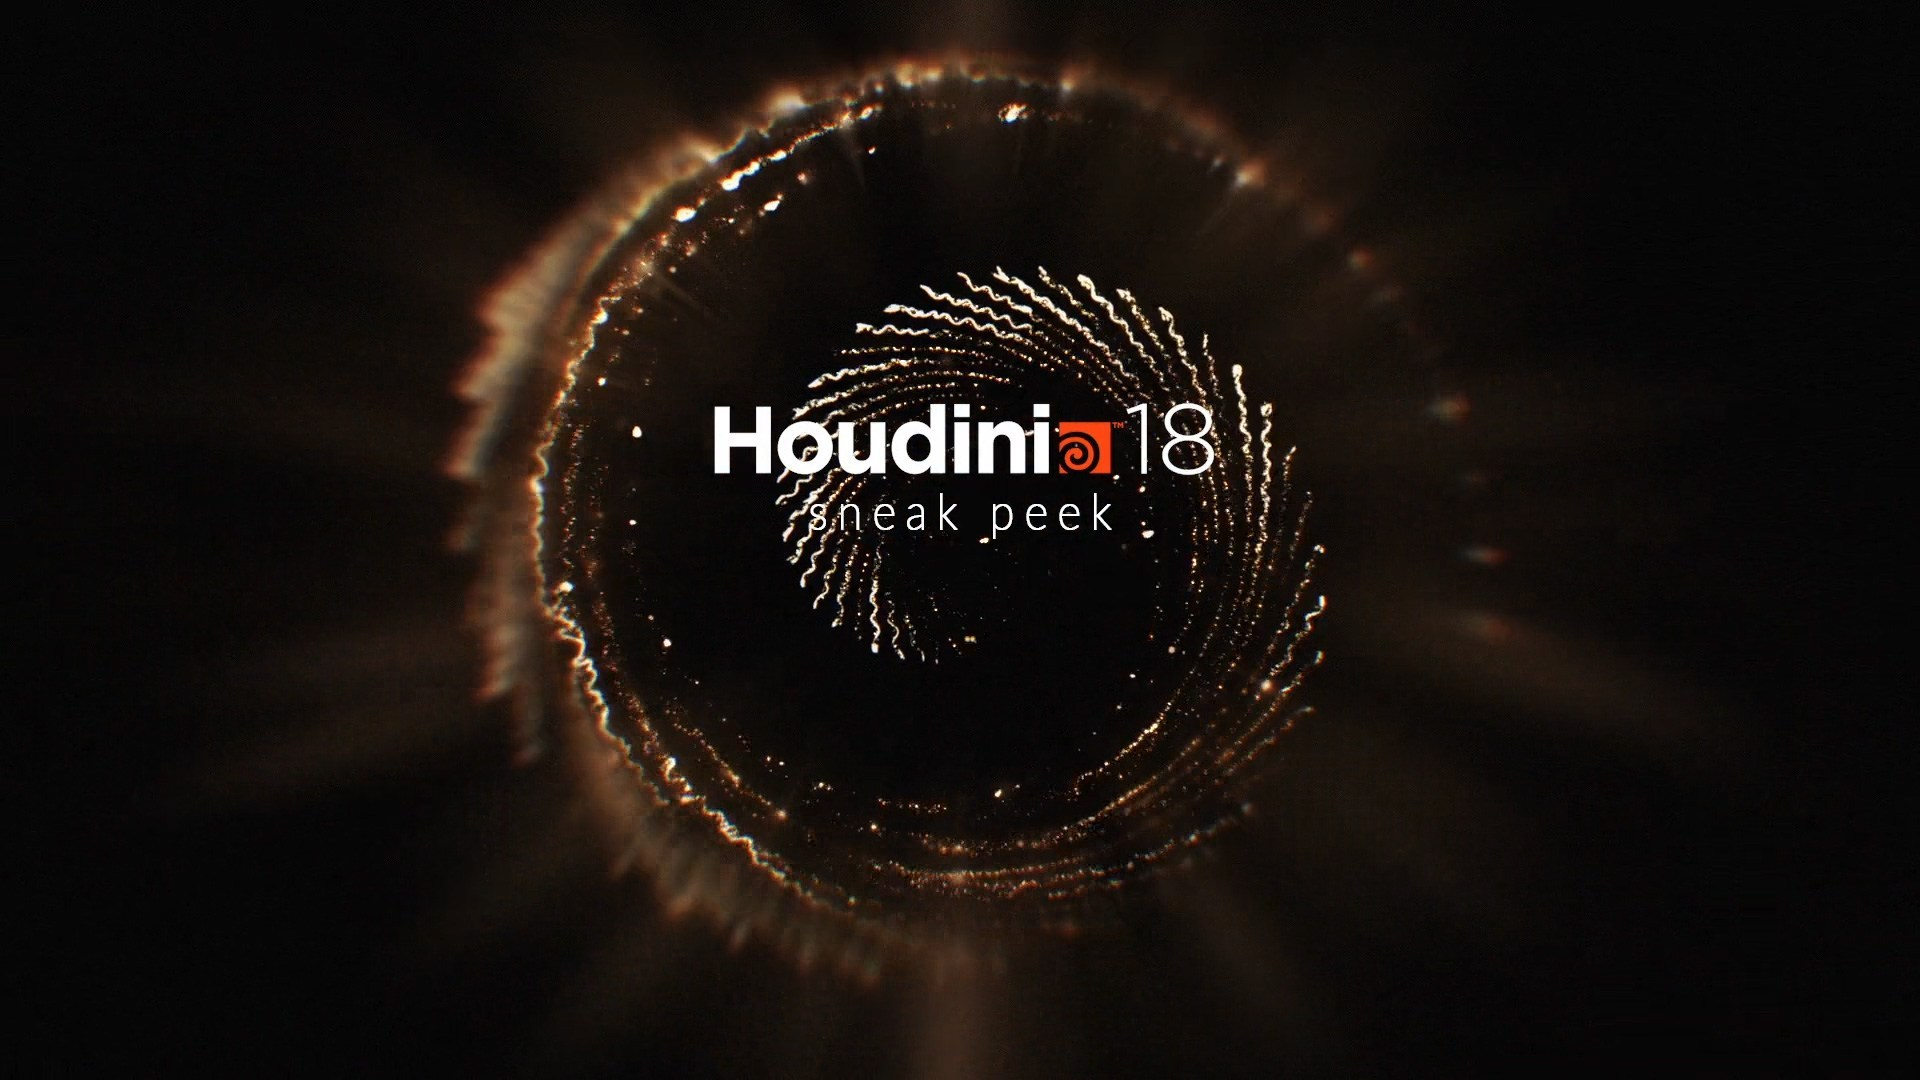 Sidefx Houdini 18.1 Crack & license key Free Download